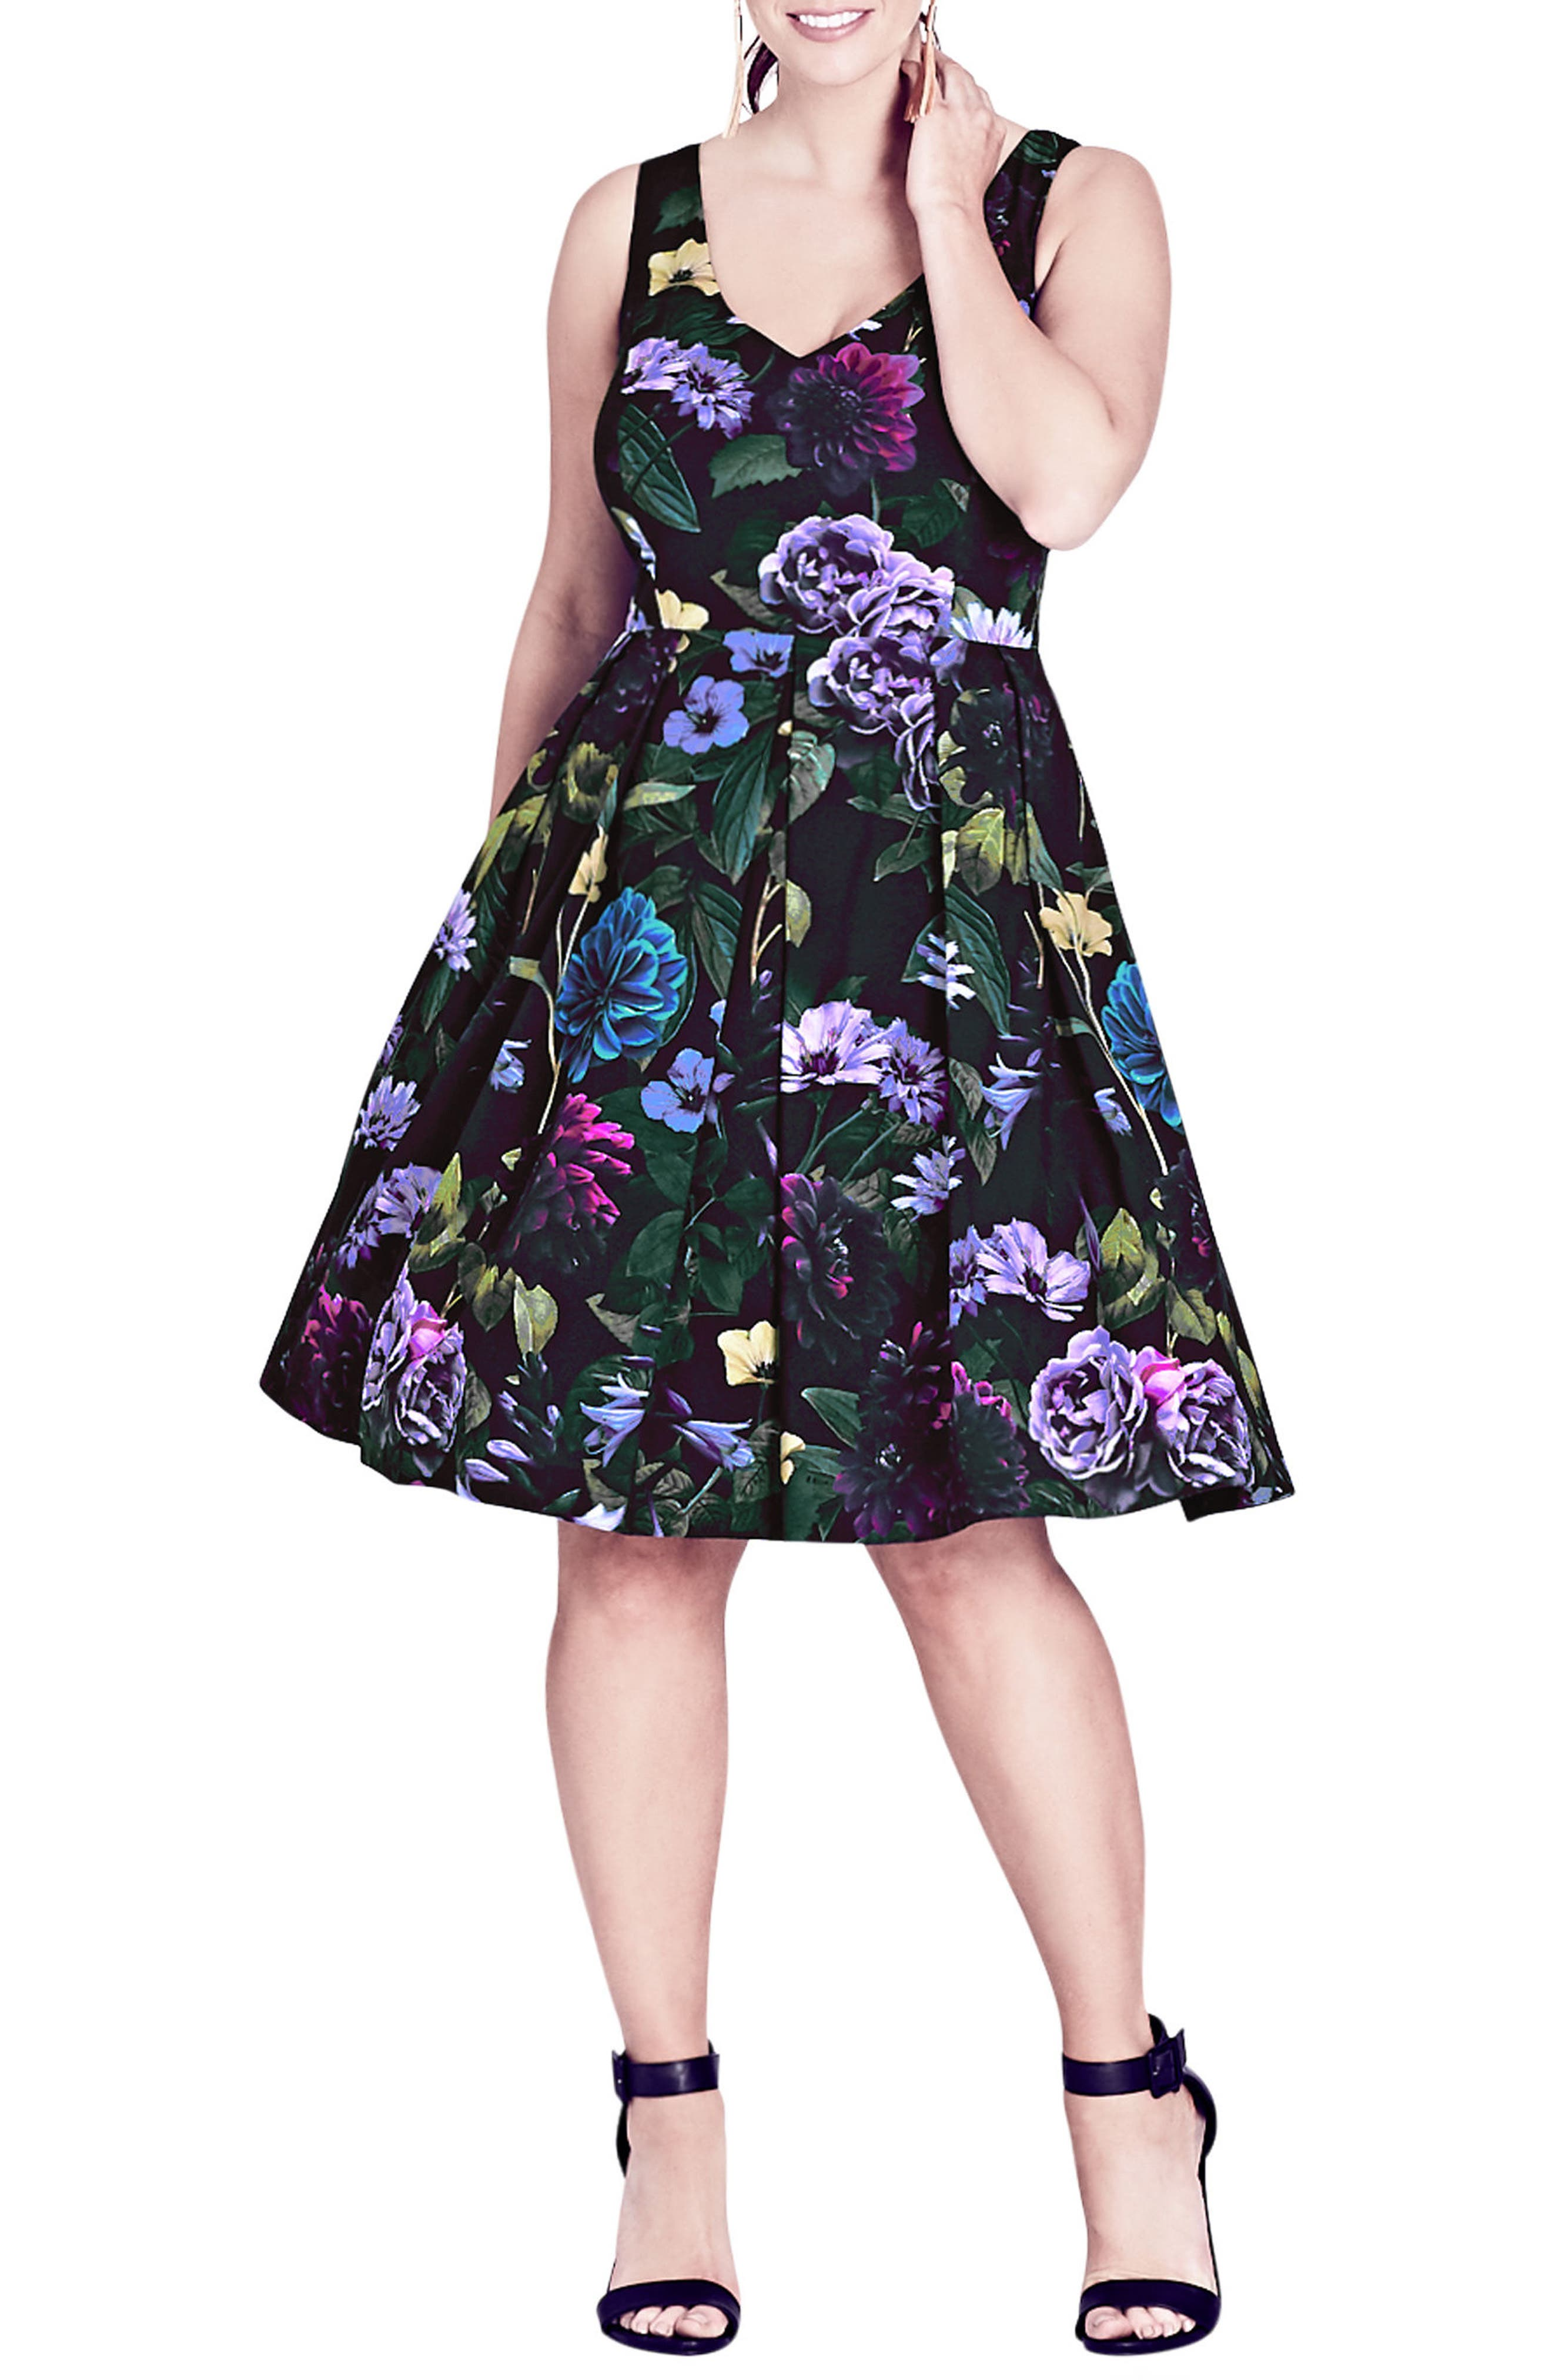 Alternate Image 1 Selected - City Chic Perfect Floral Fit & Flare Dress (Plus Size)